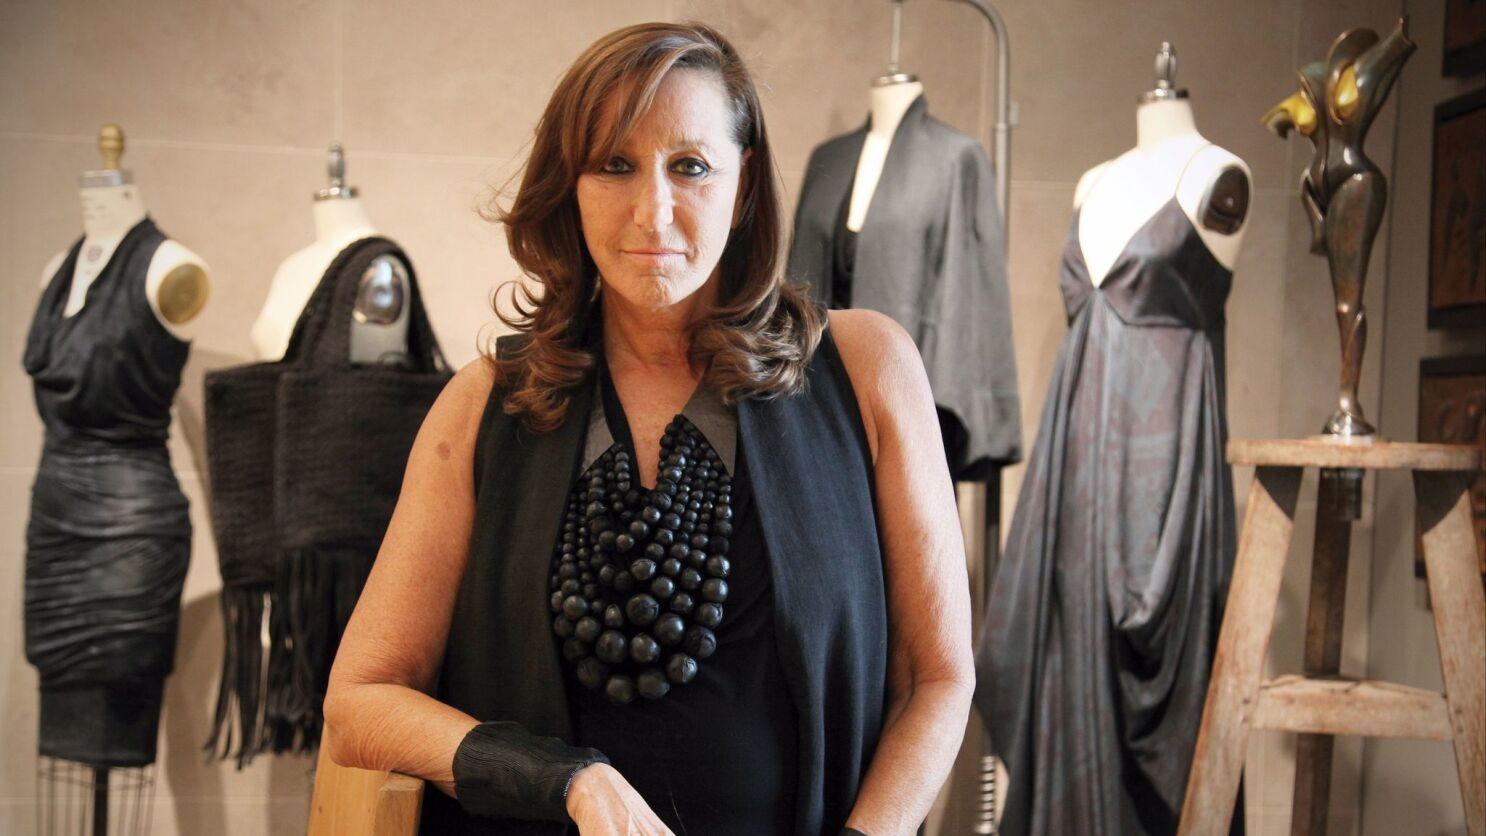 Donna Karan Faces Backlash For Her Harvey Weinstein Comments Los Angeles Times